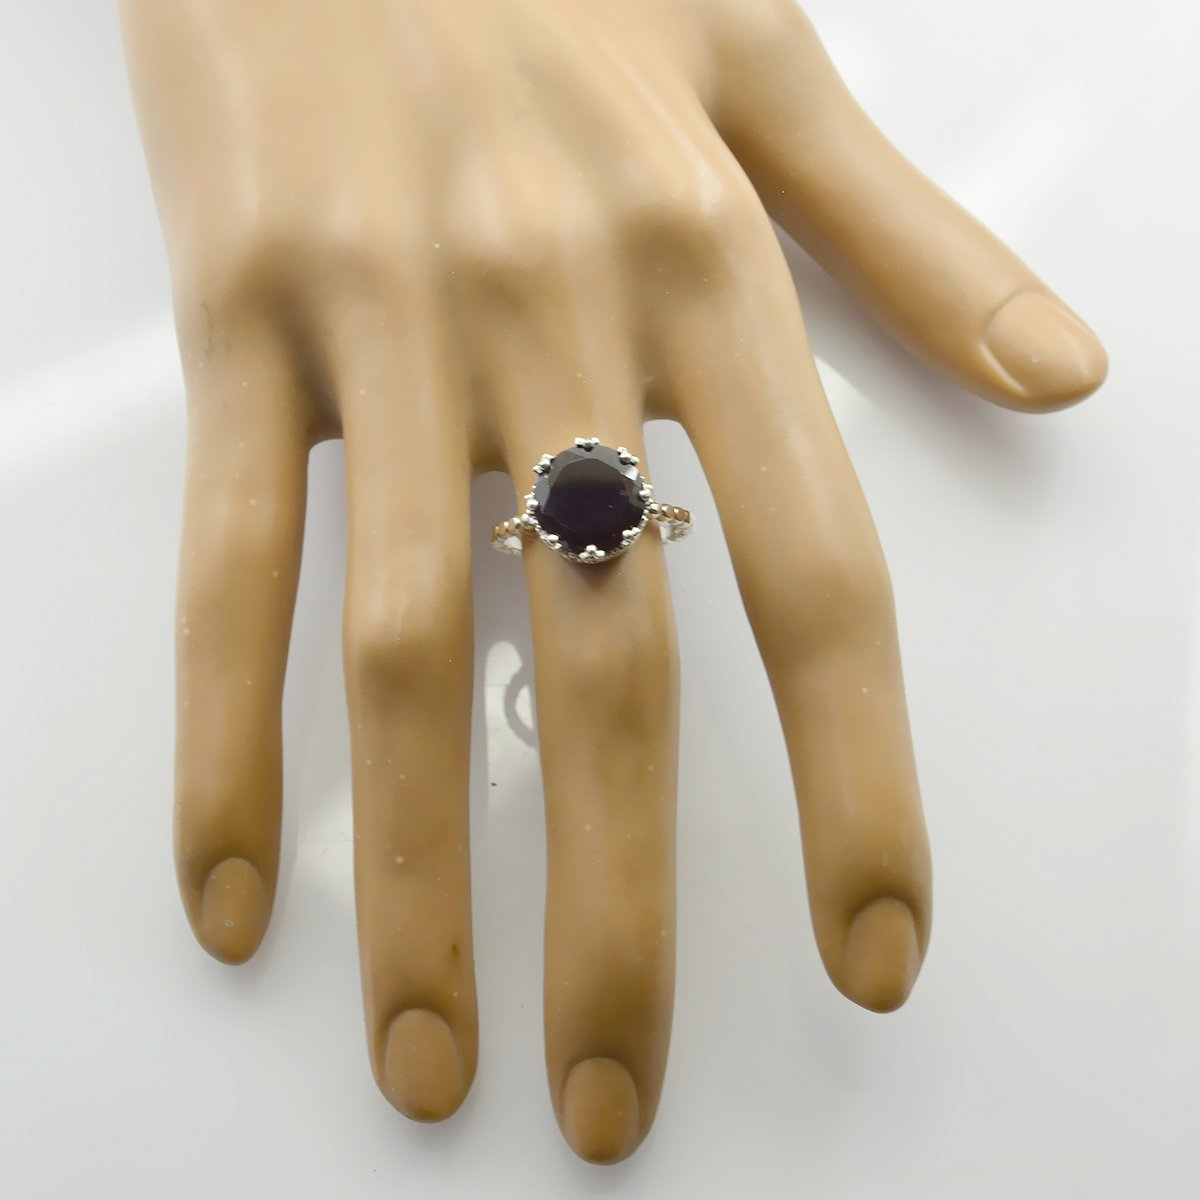 Lucky Gemstone Round Faceted Garnet Ring jents Jewelry Good Item Gift for Girlfriend Bohemian 925 Sterling Silver Red Garnet Lucky Gemstone Ring